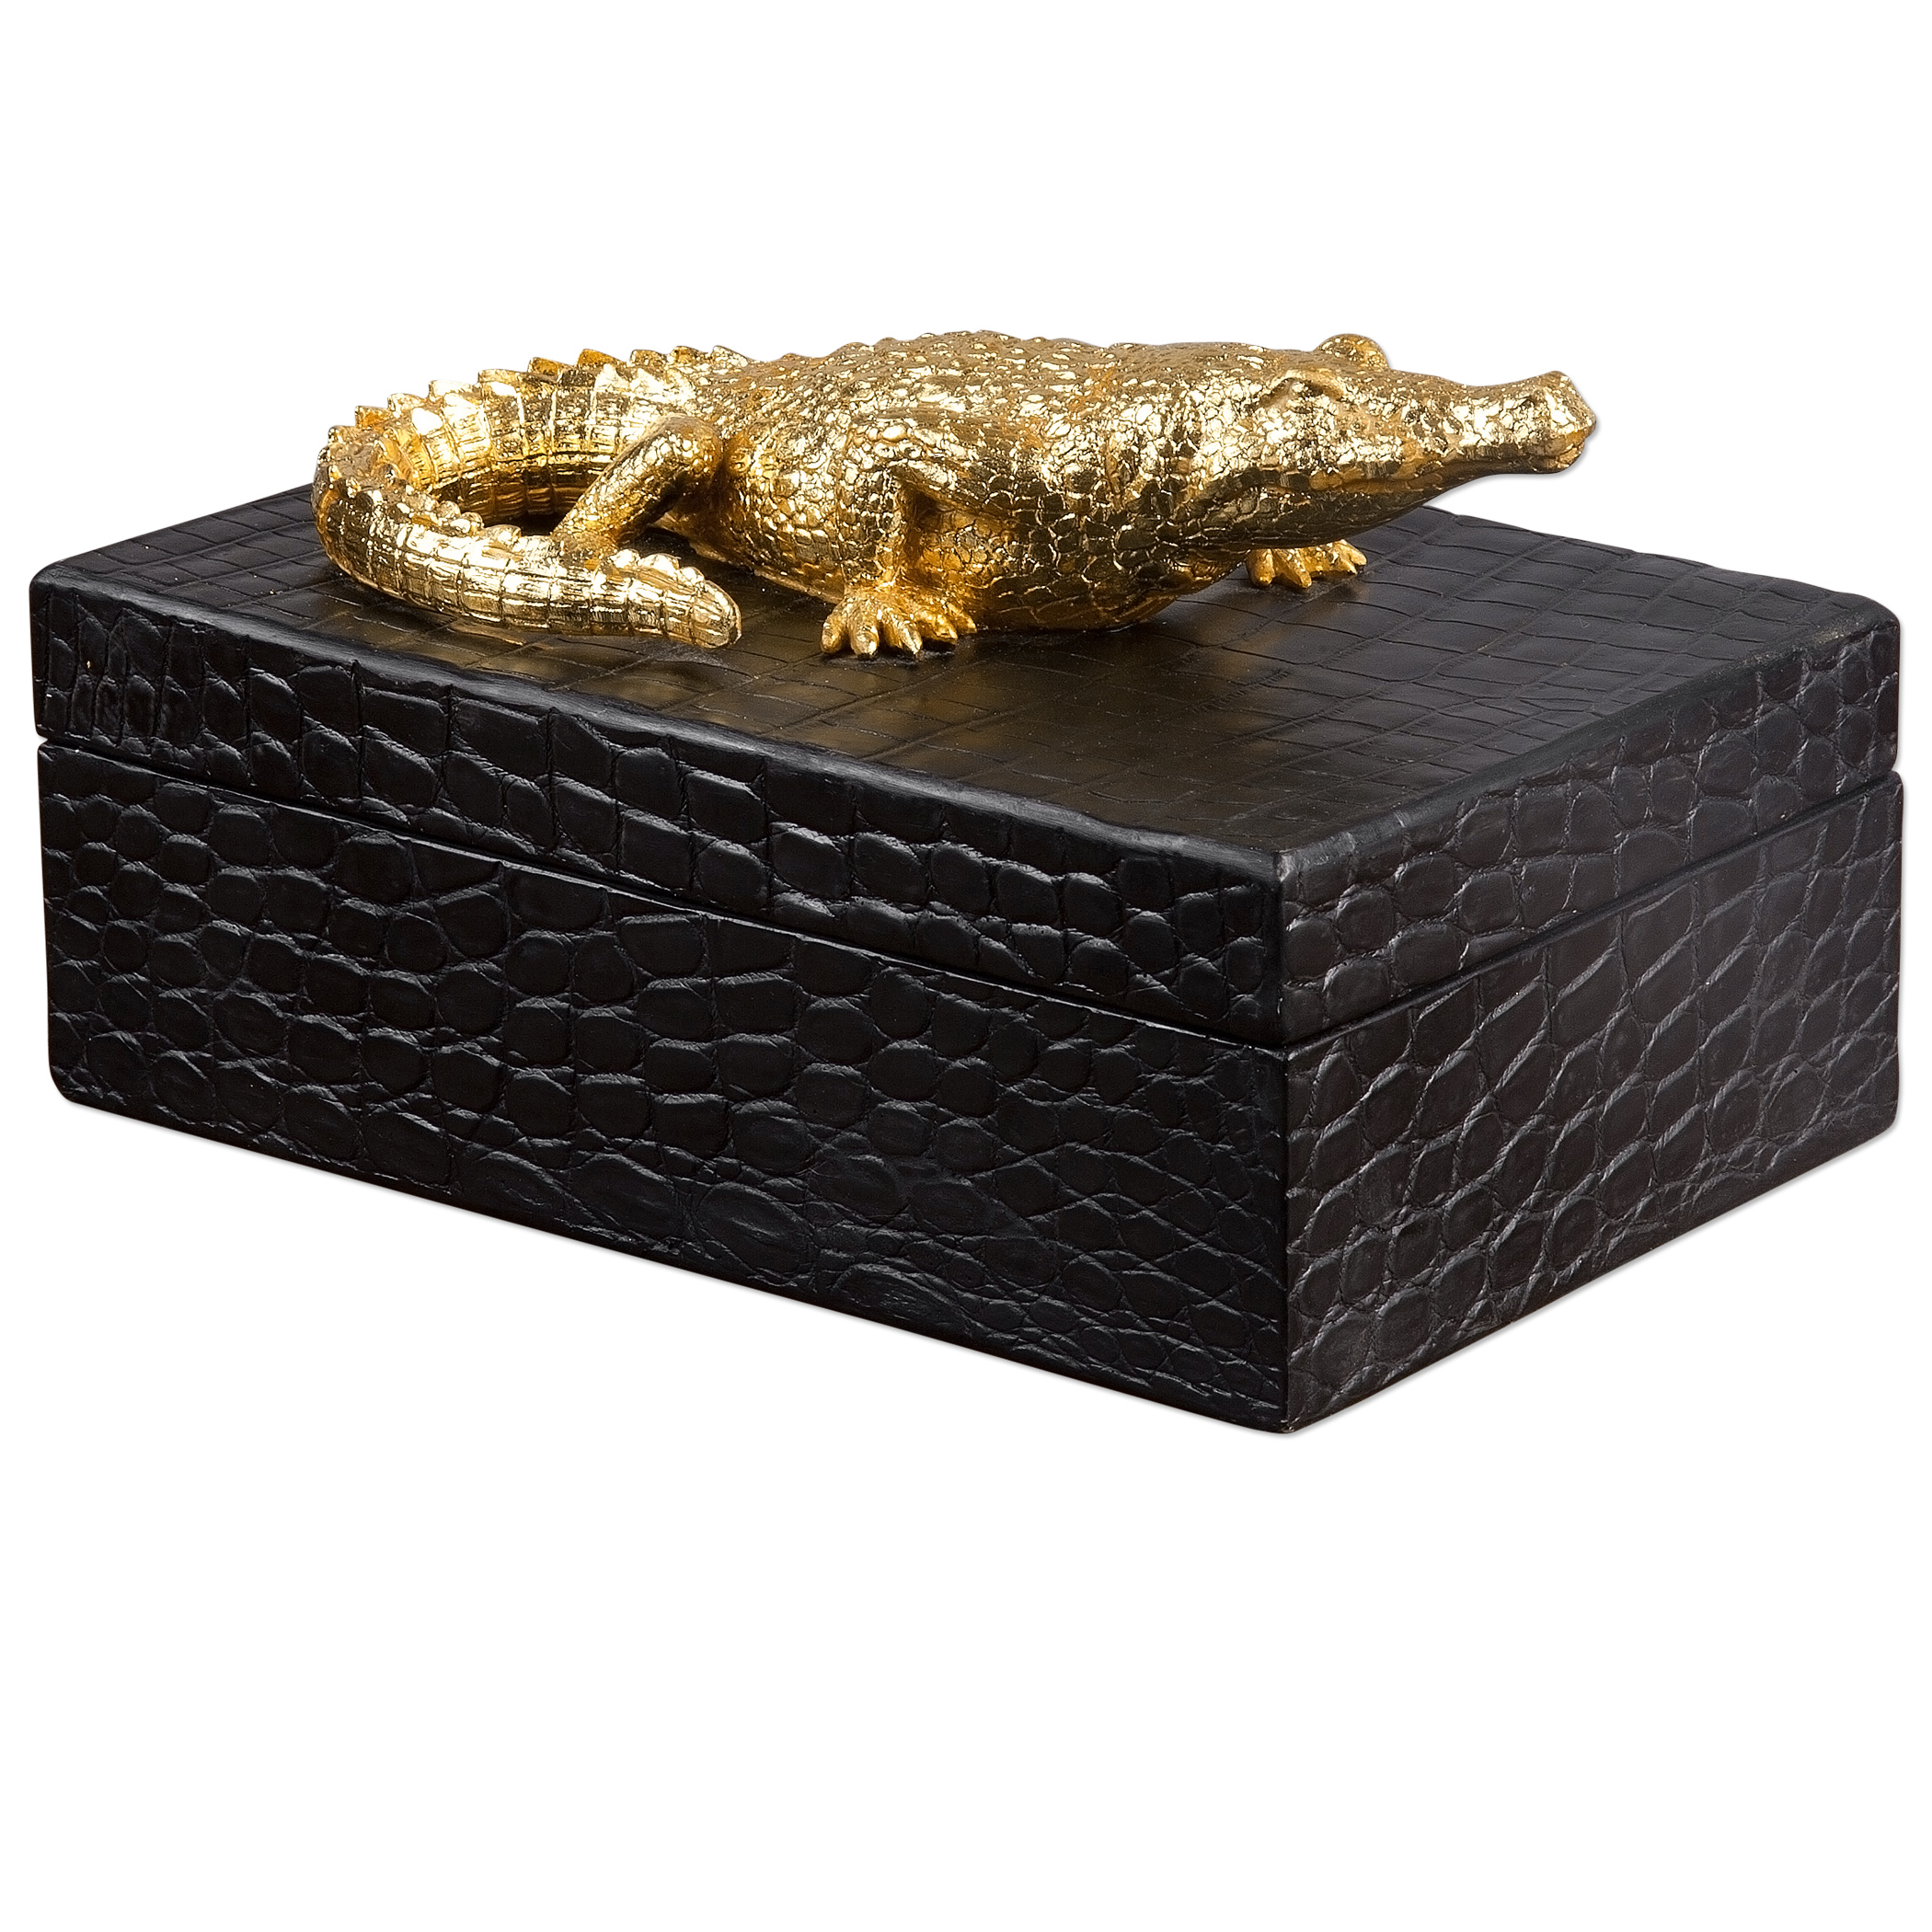 Uttermost Accessories Gold Crocodile Box - Item Number: 20059